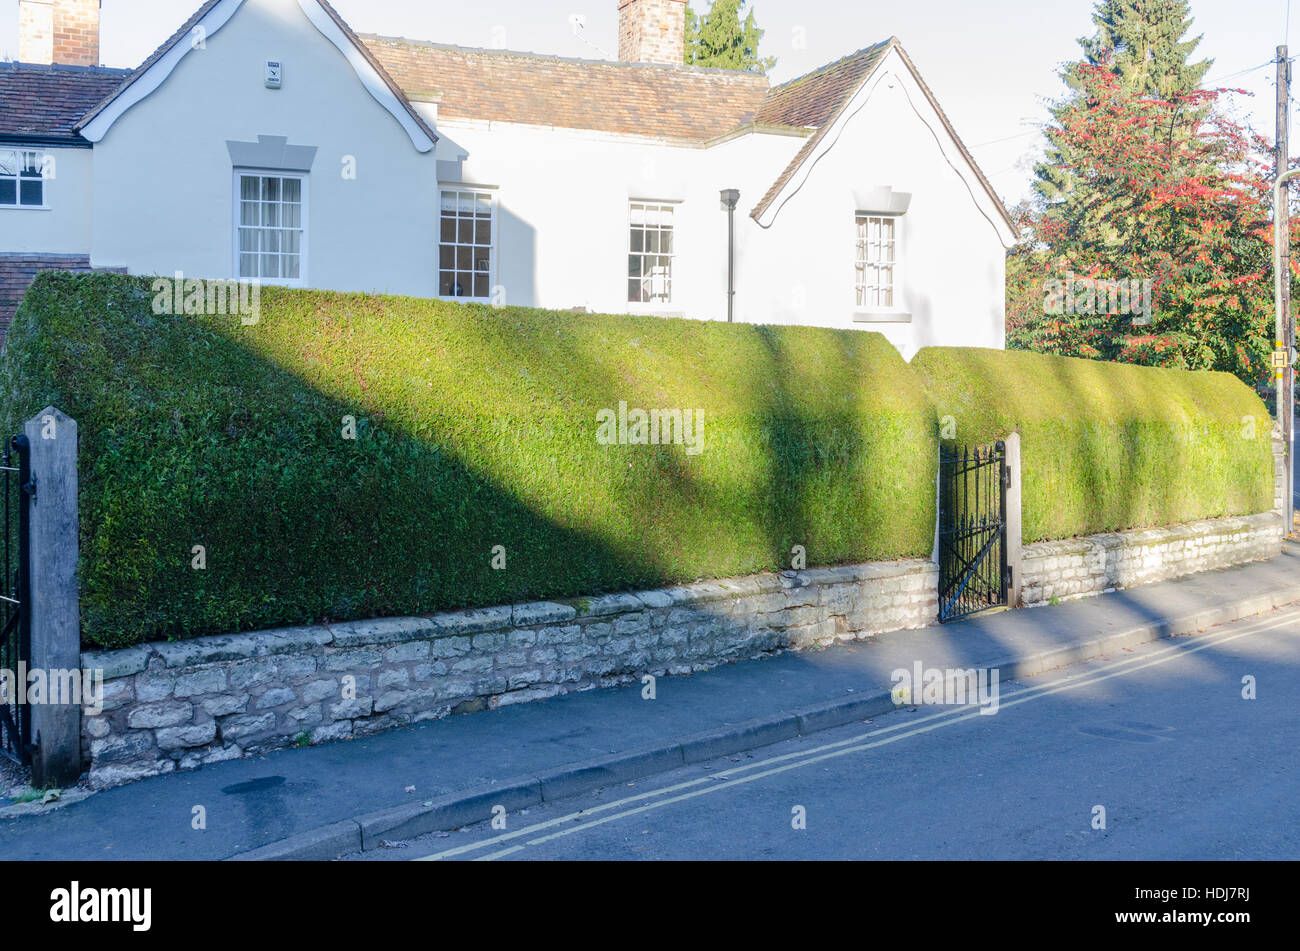 Well maintained yew hedge around a house in Much Wenlock, Shropshire - Stock Image